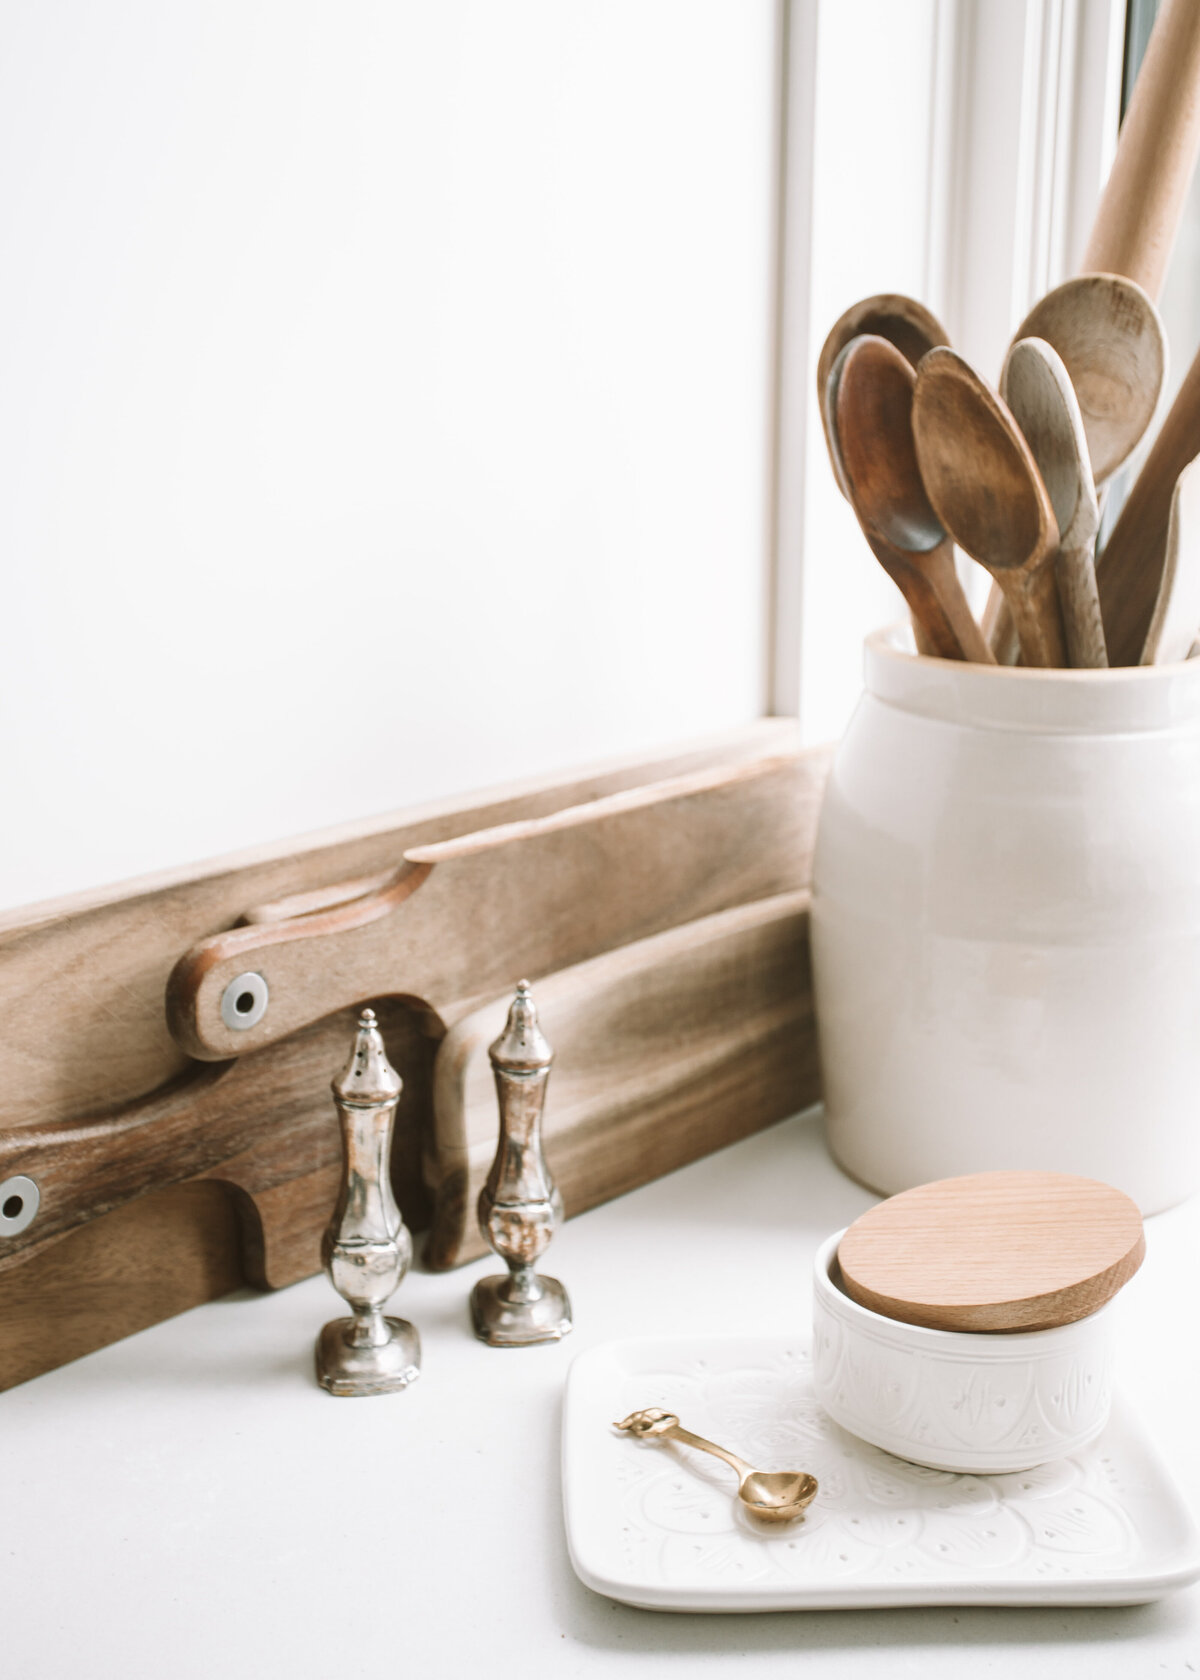 Wooden utensils are in a white ceramic pot next to some wooden chopping boards and silver salt and pepper shakers.